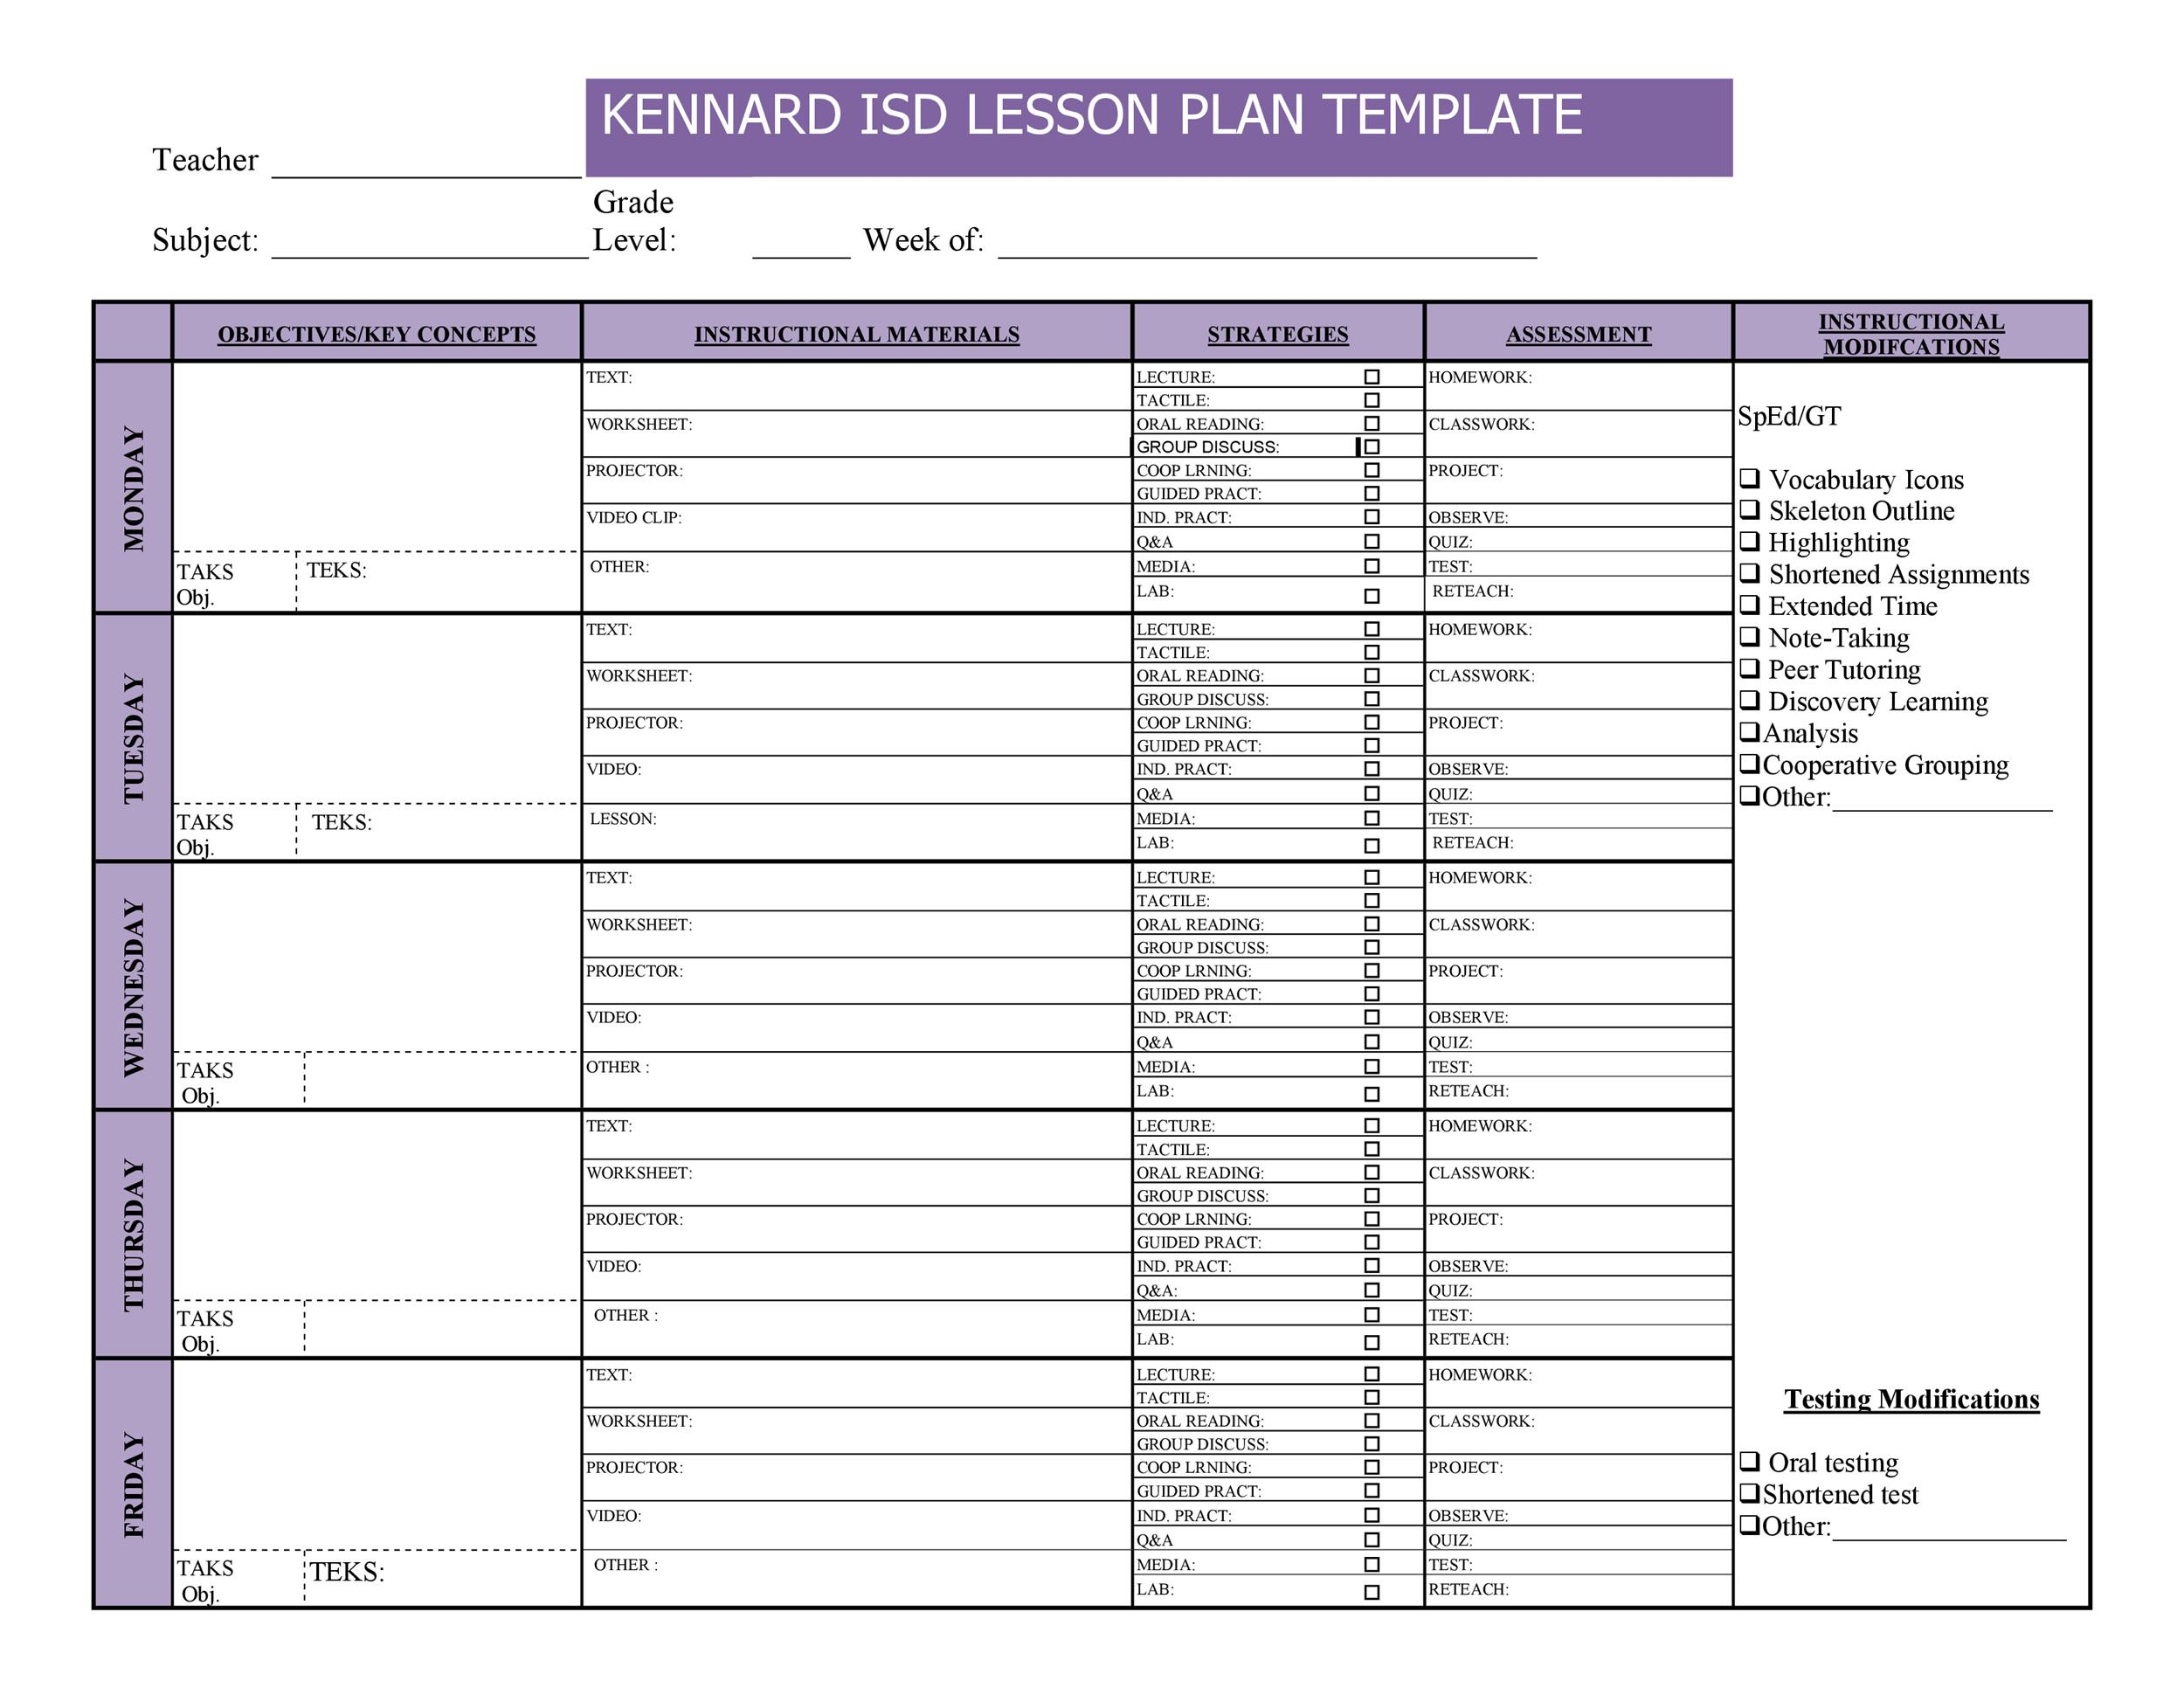 007 Surprising Daycare Lesson Plan Template Picture  Sample Child Care Curriculum PlanningFull